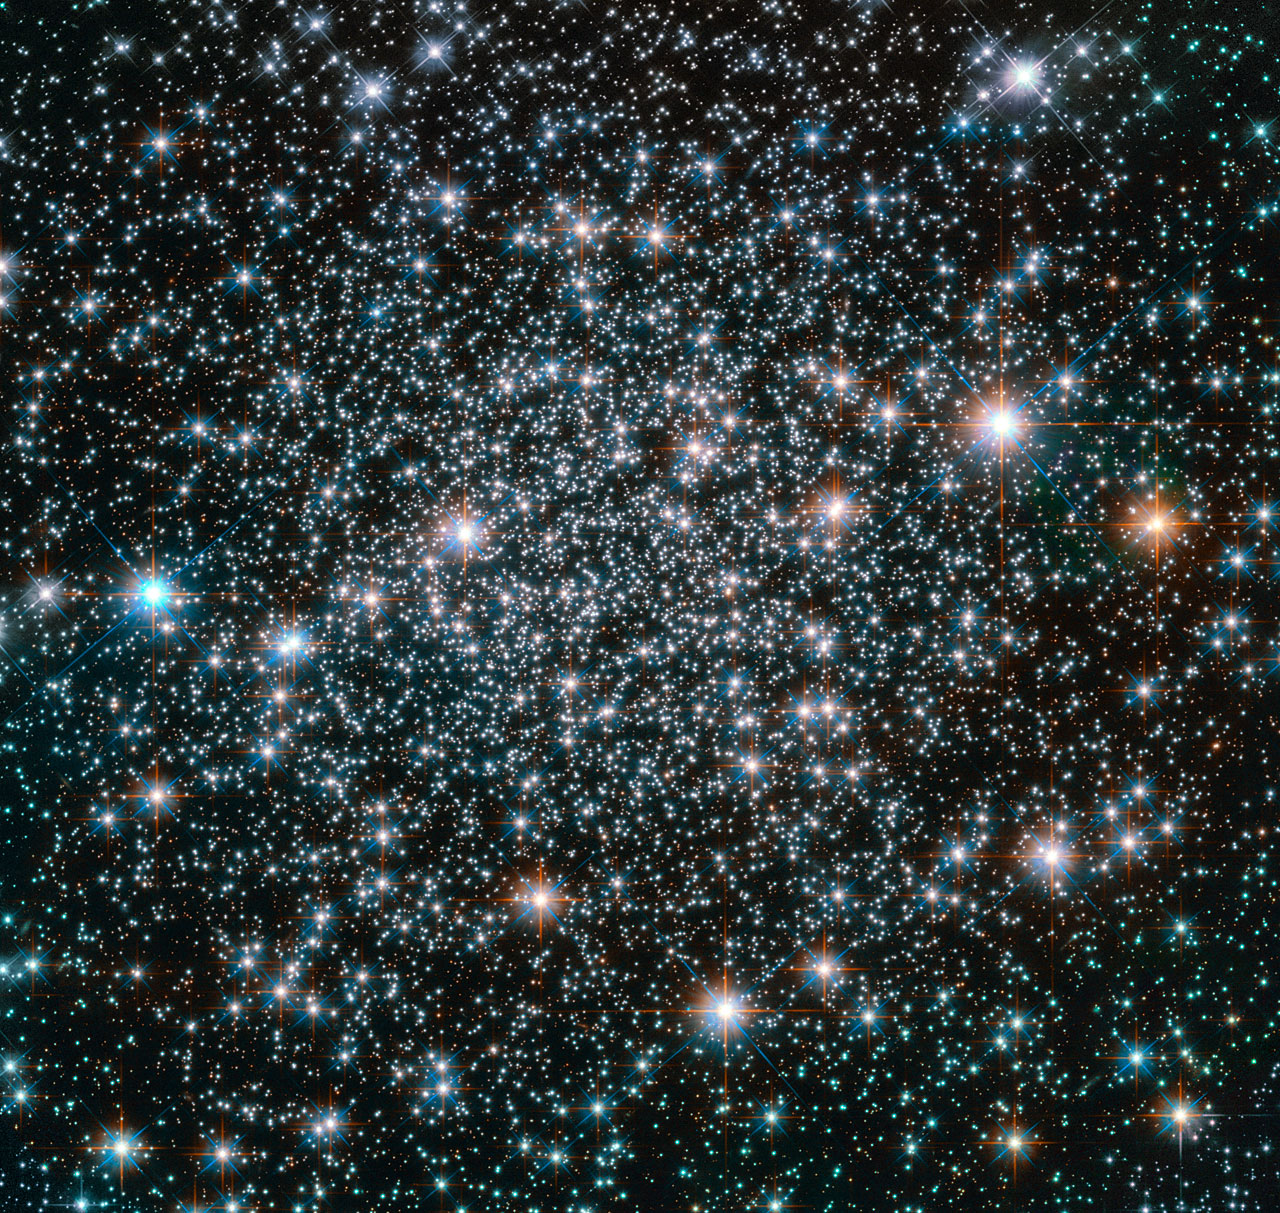 hubble images high resolution no filter - photo #30